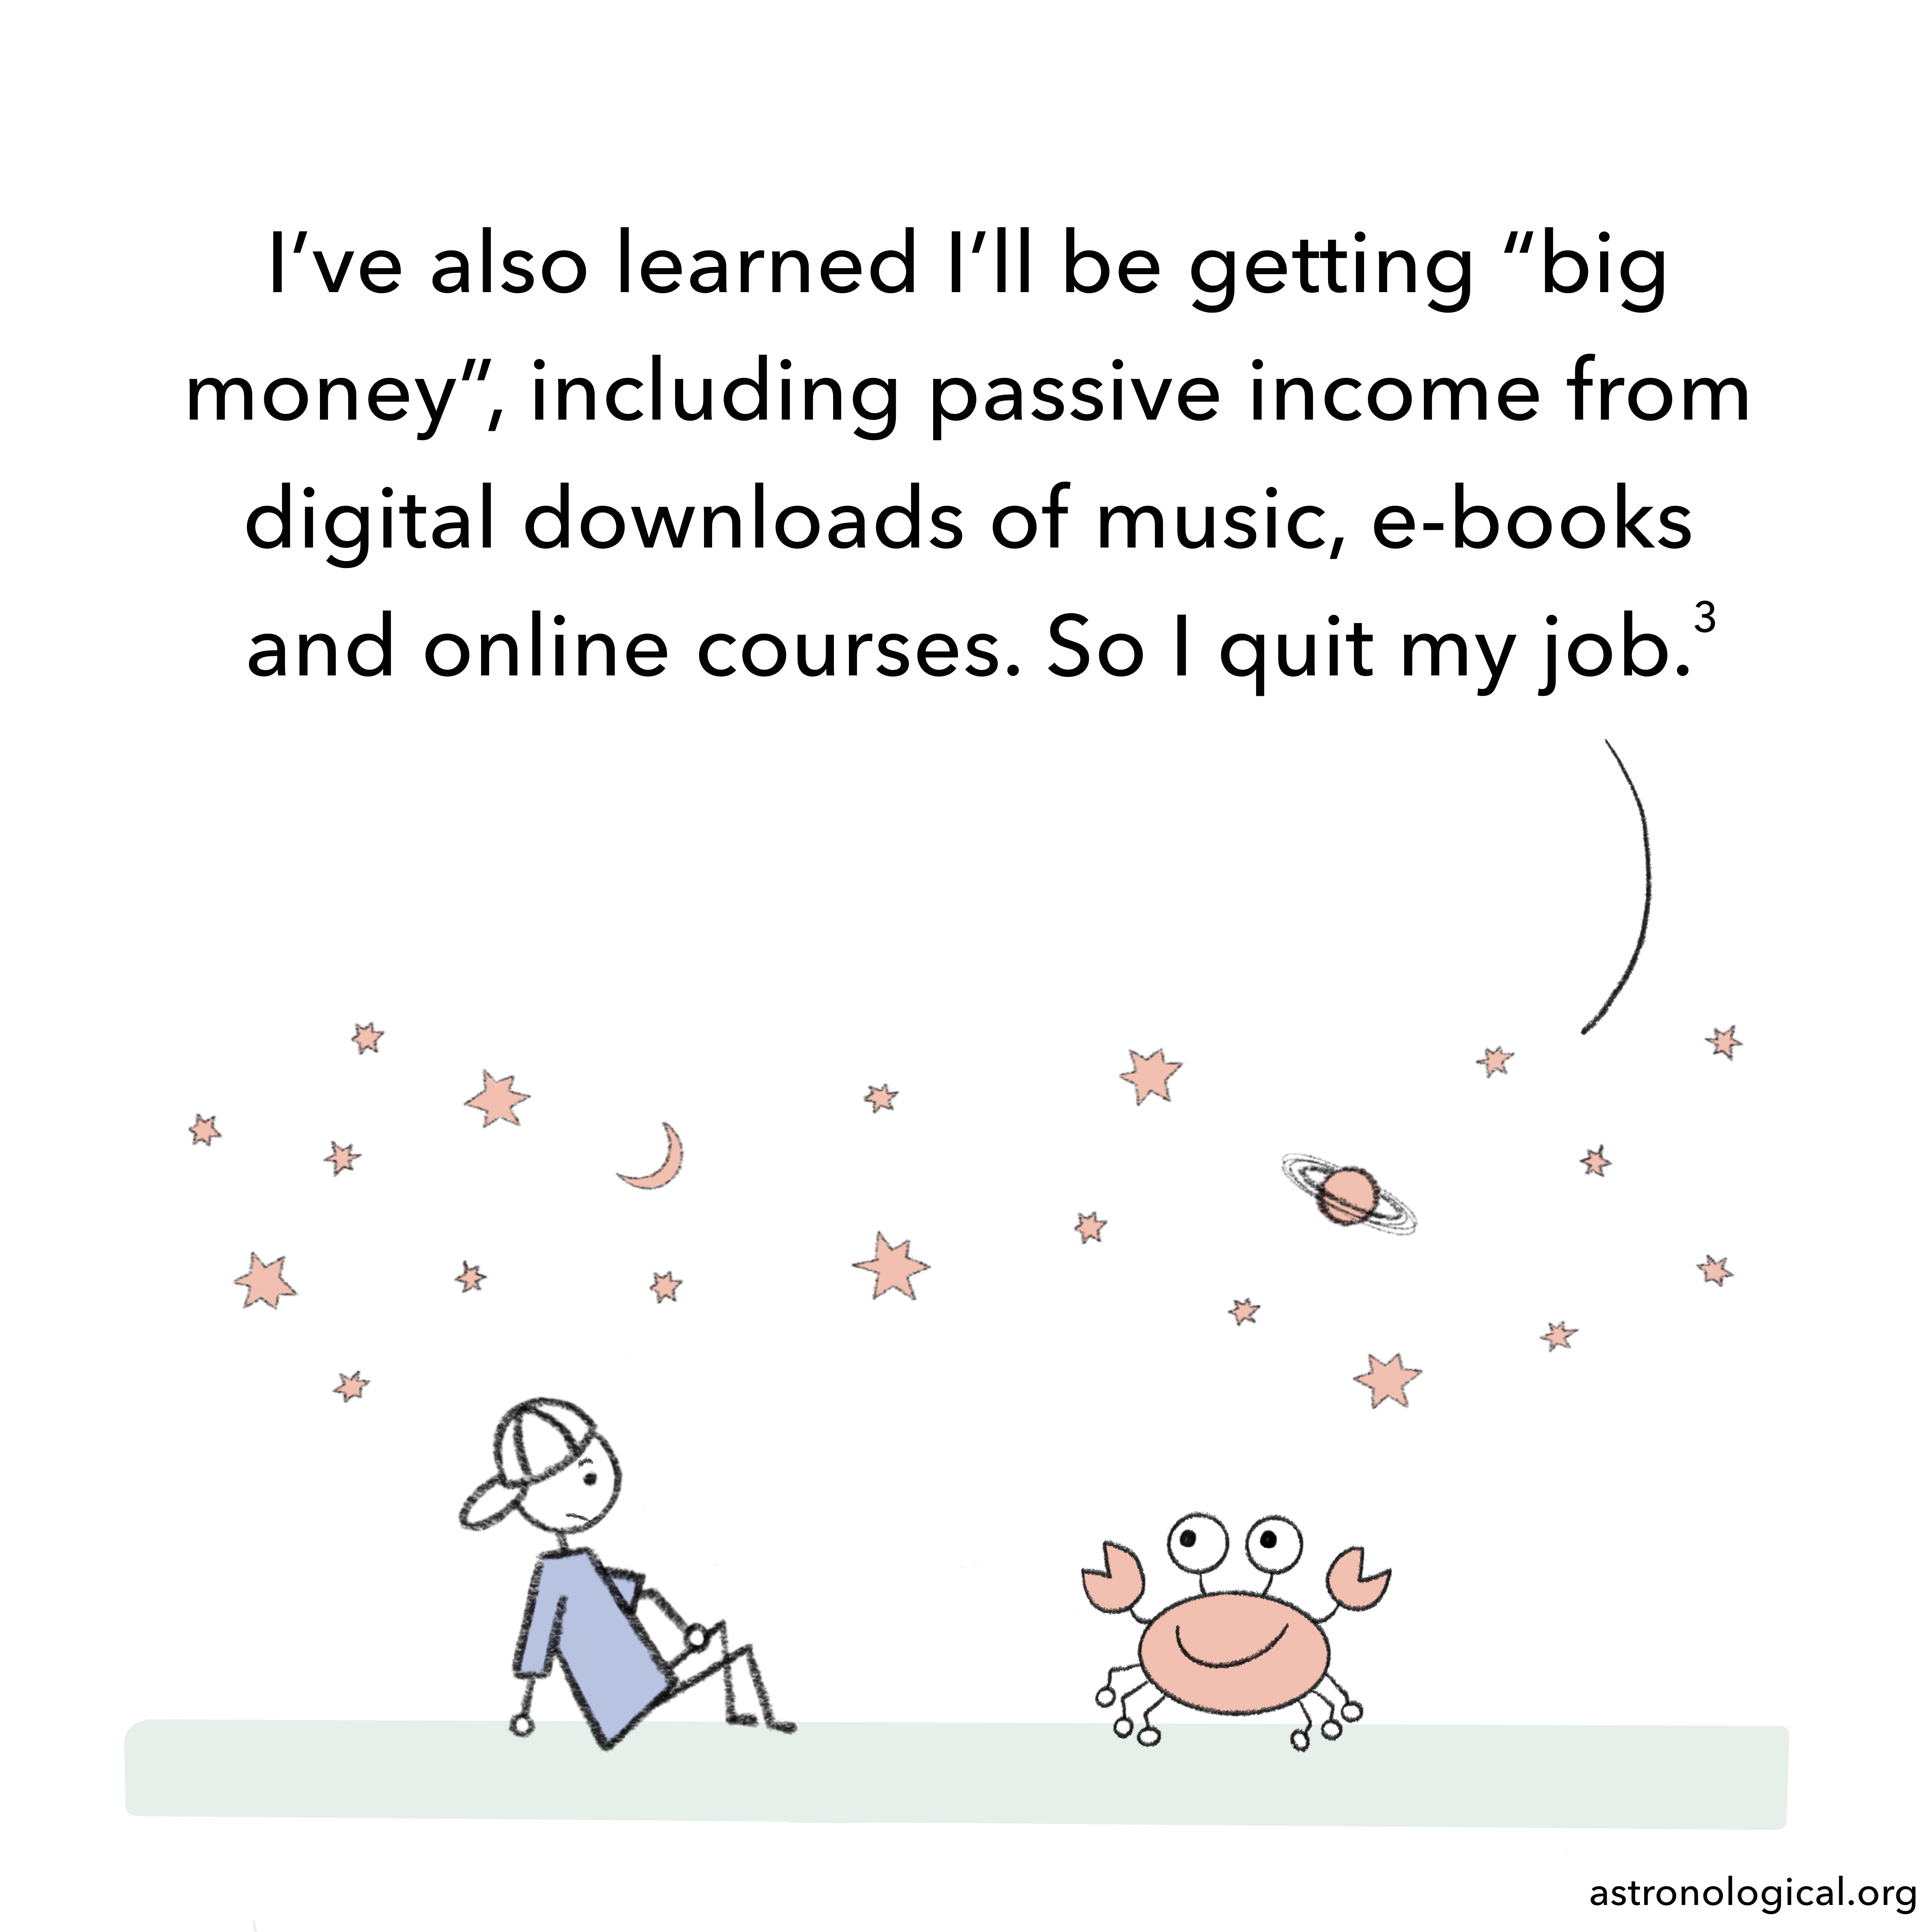 """The crab adds: I've also learned I'll be getting """"big money"""", including passive income from digital downloads of music, e-books and online courses. So I quit my job."""